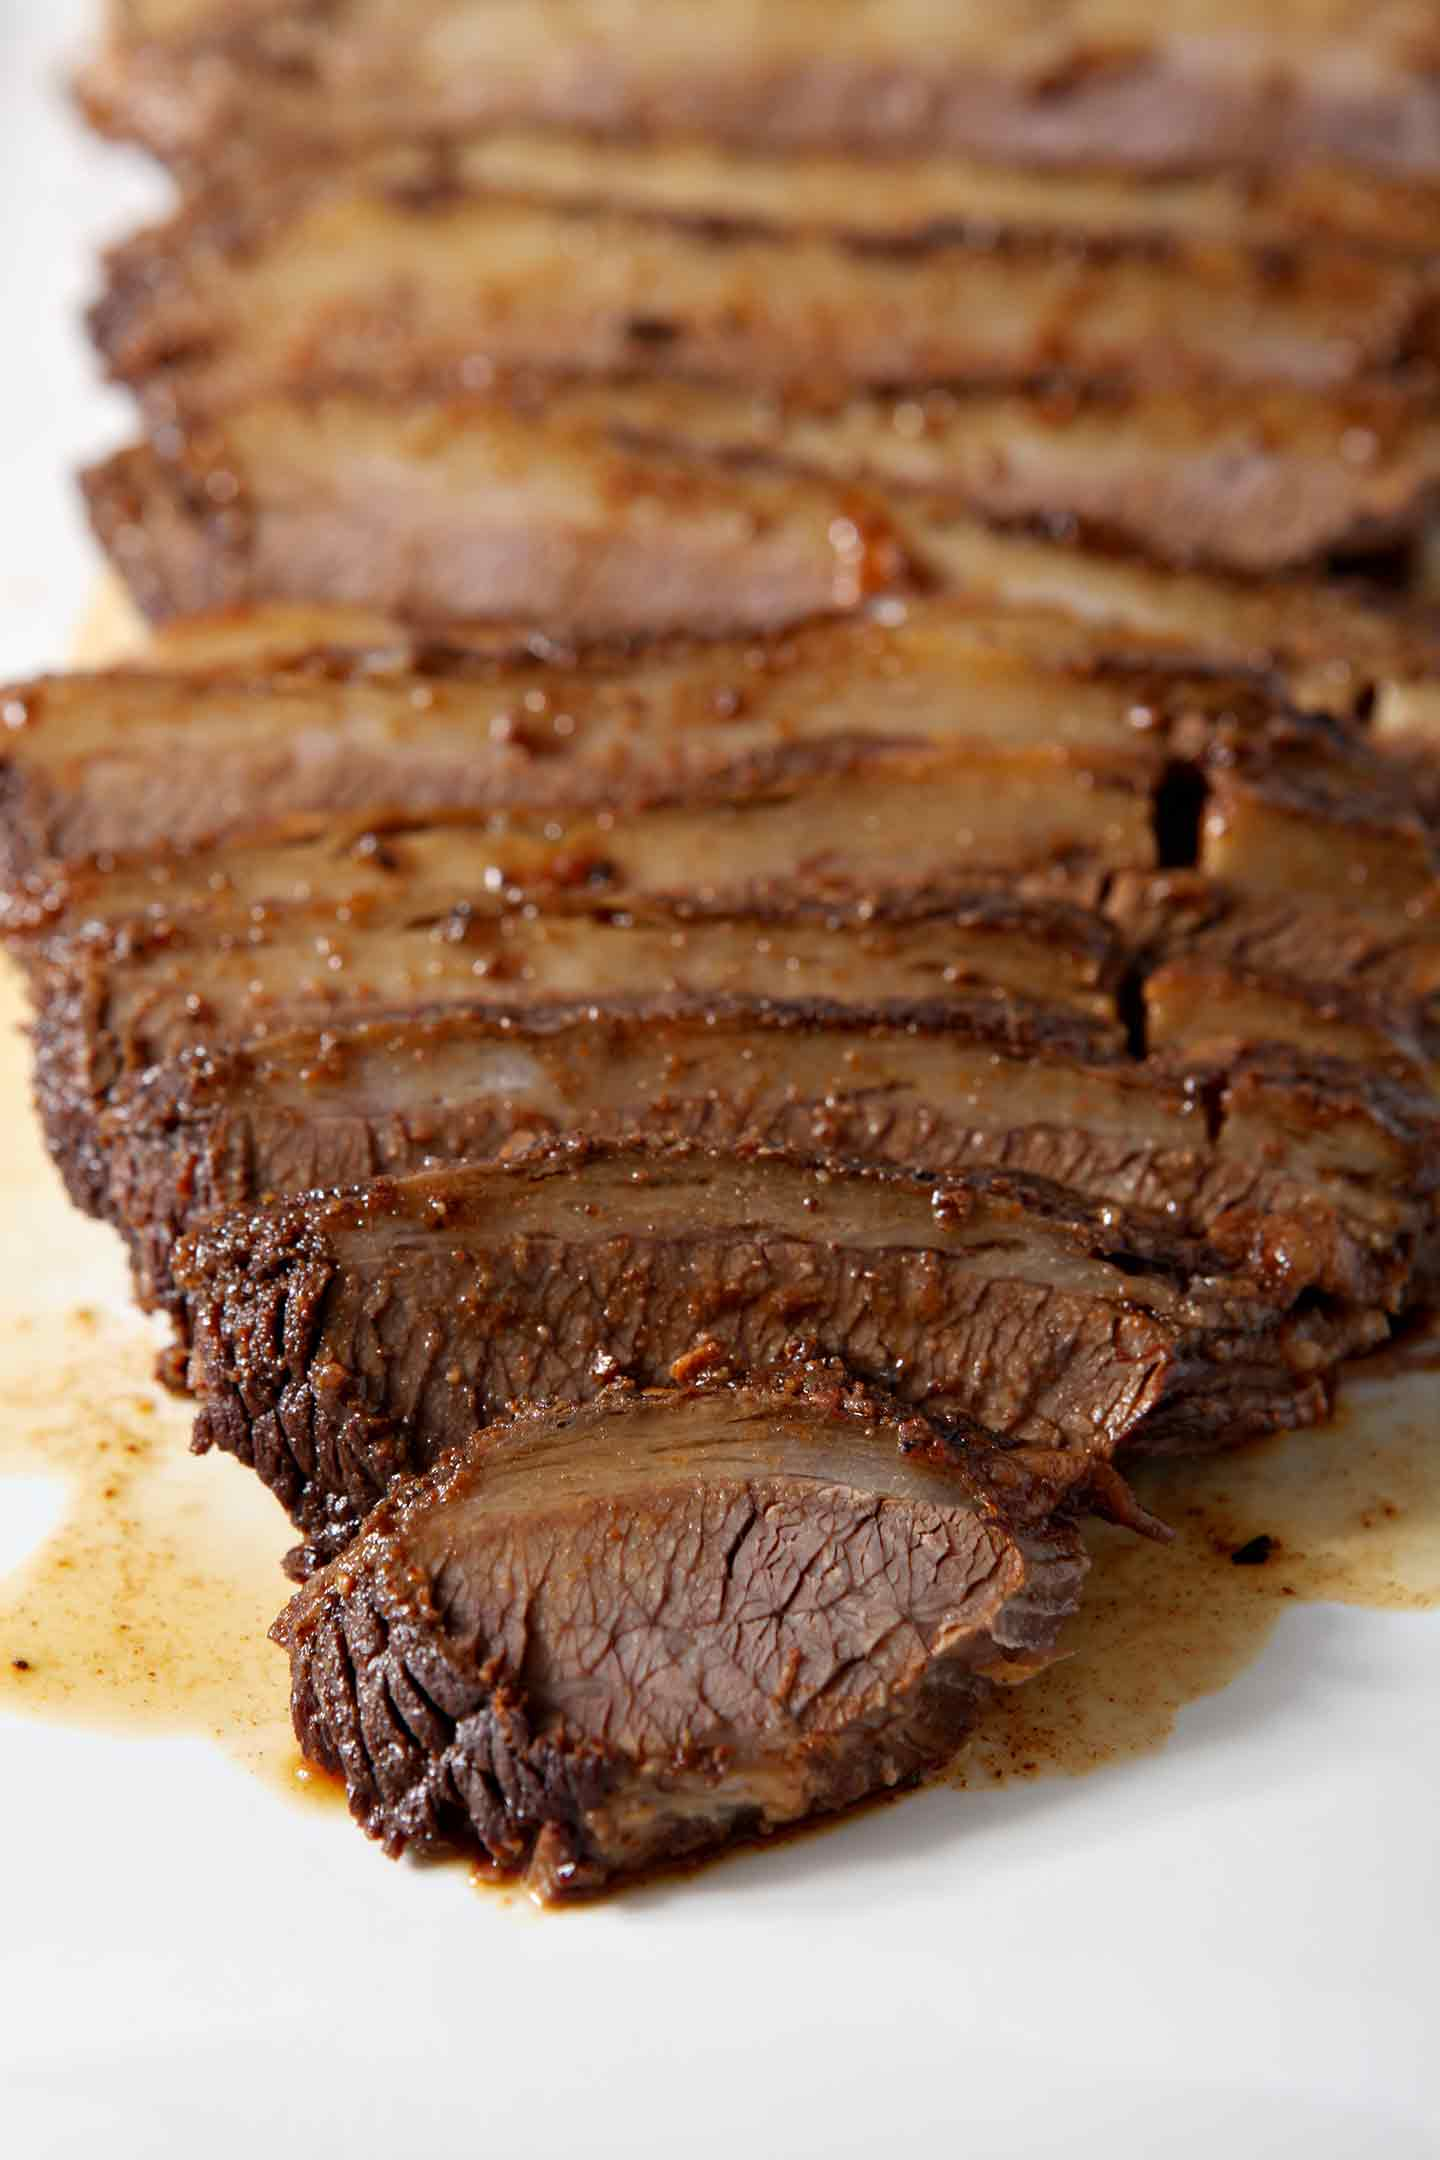 Close up photo of sliced Instant Pot BBQ Brisket on a white platter, surrounded by juices